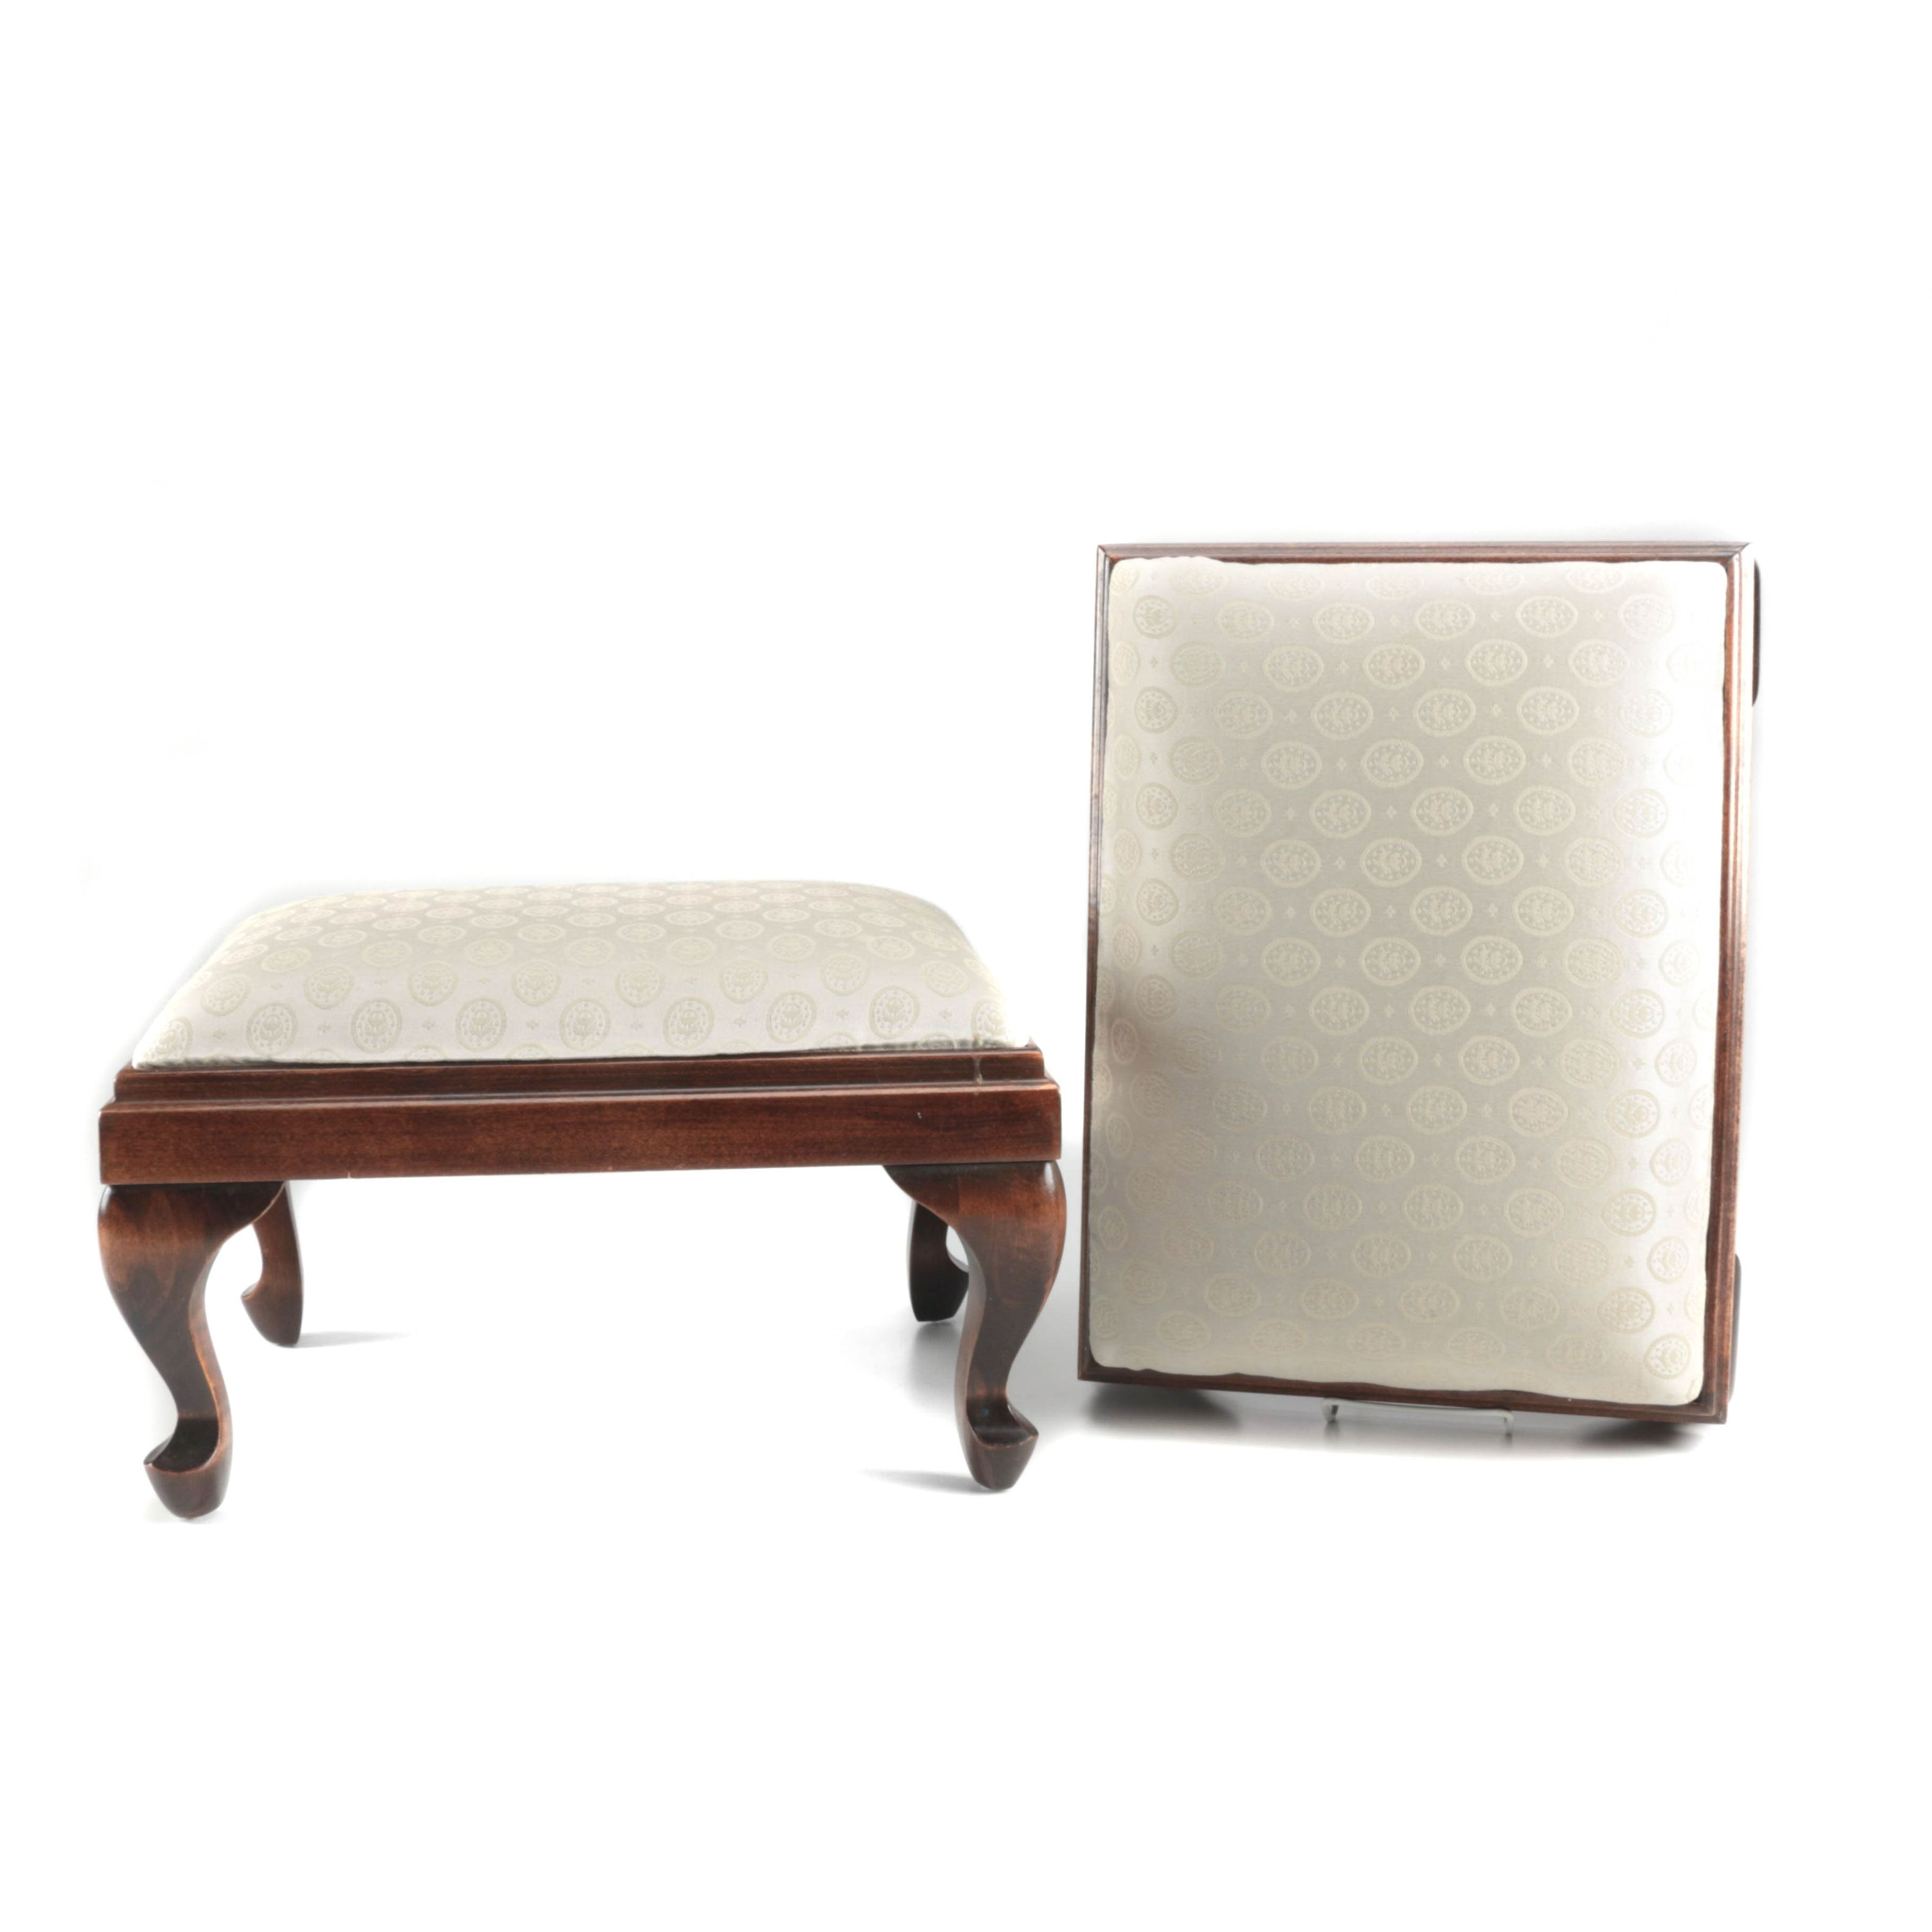 Pair of Queen Anne Style Footstools by the Ammerman House